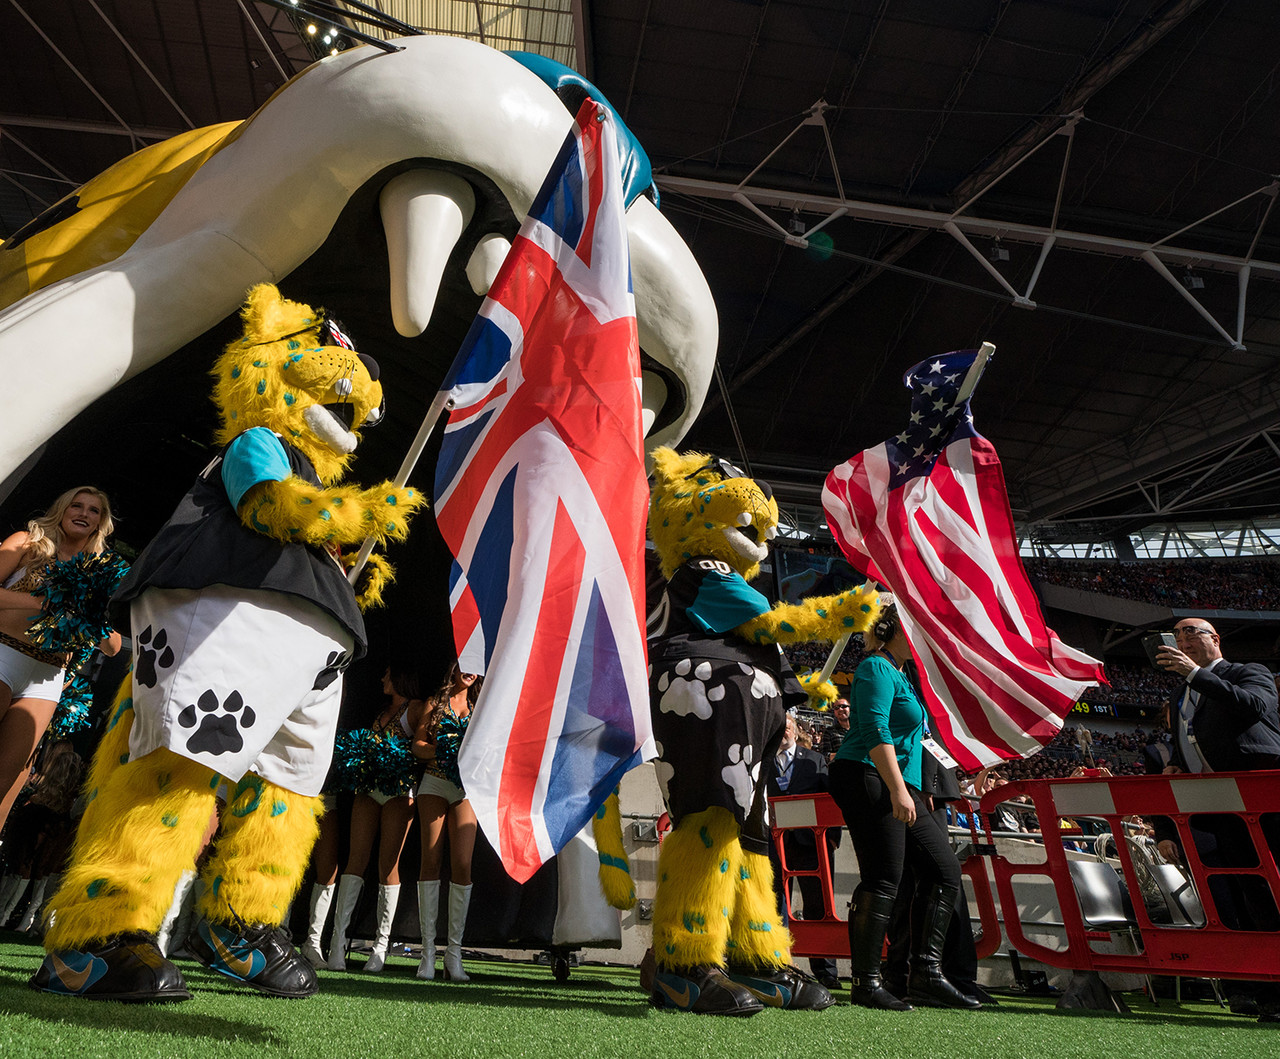 Jacksonville Jaguars mascot Jaxson de Ville leads the Jacksonville Jaguars on to the field prior to an NFL football game against the Baltimore Ravens at Wembley Stadium in London, Sunday Sept. 24, 2017.